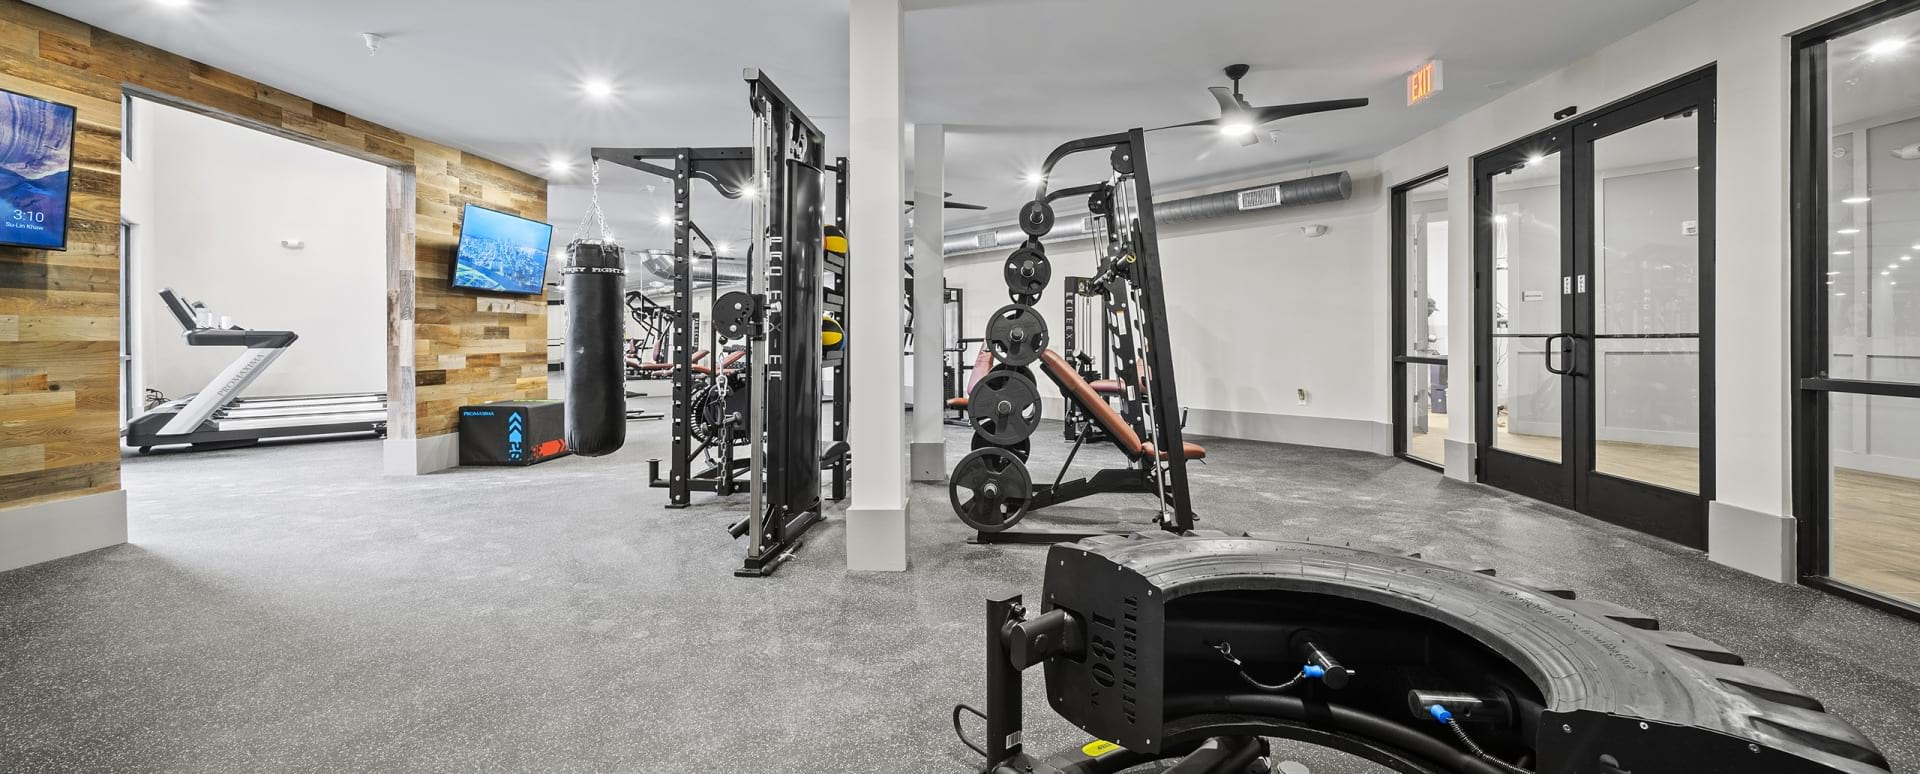 Spacious gym with equipment at our apartments for rent in Stockbridge, GA